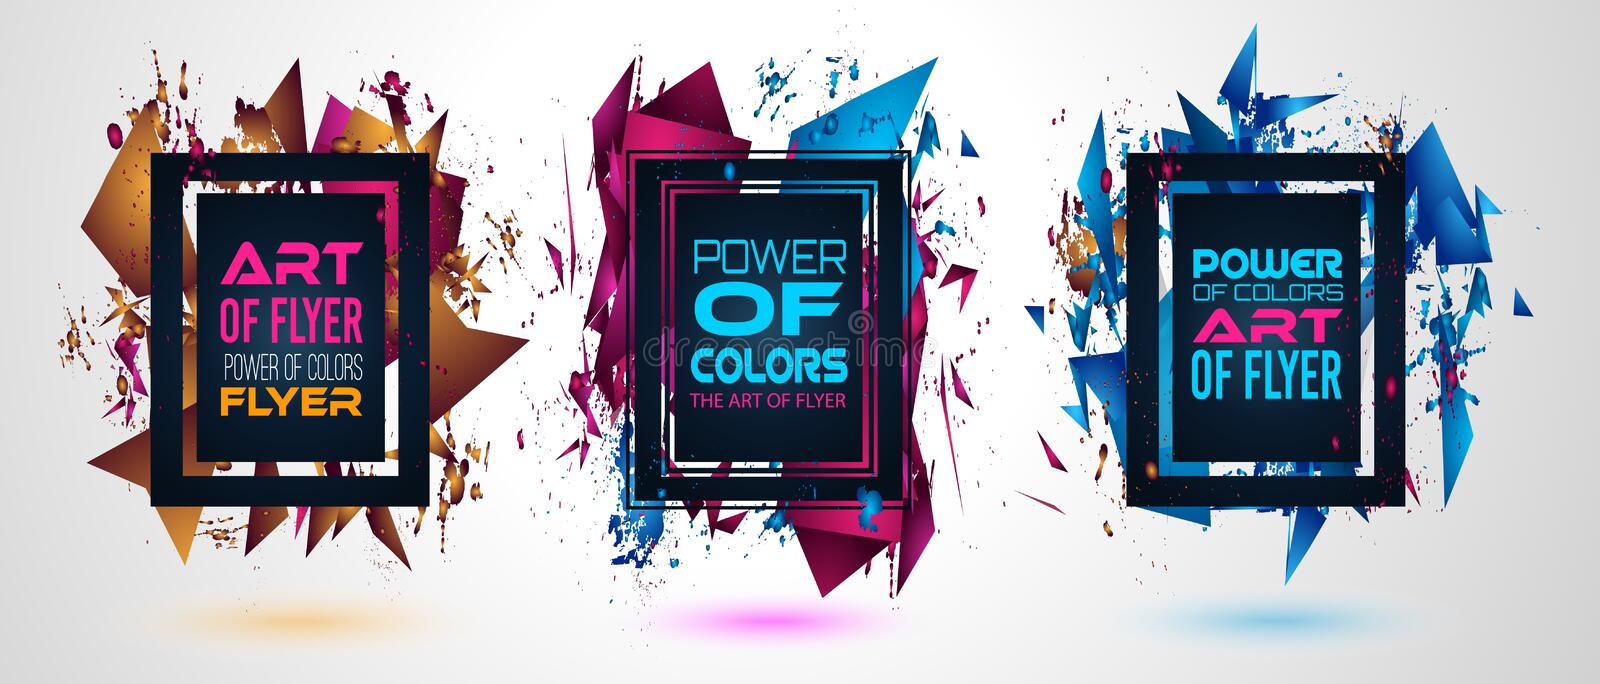 Futuristic Frame Art Design with Abstract shapes and drops of colors royalty free illustration